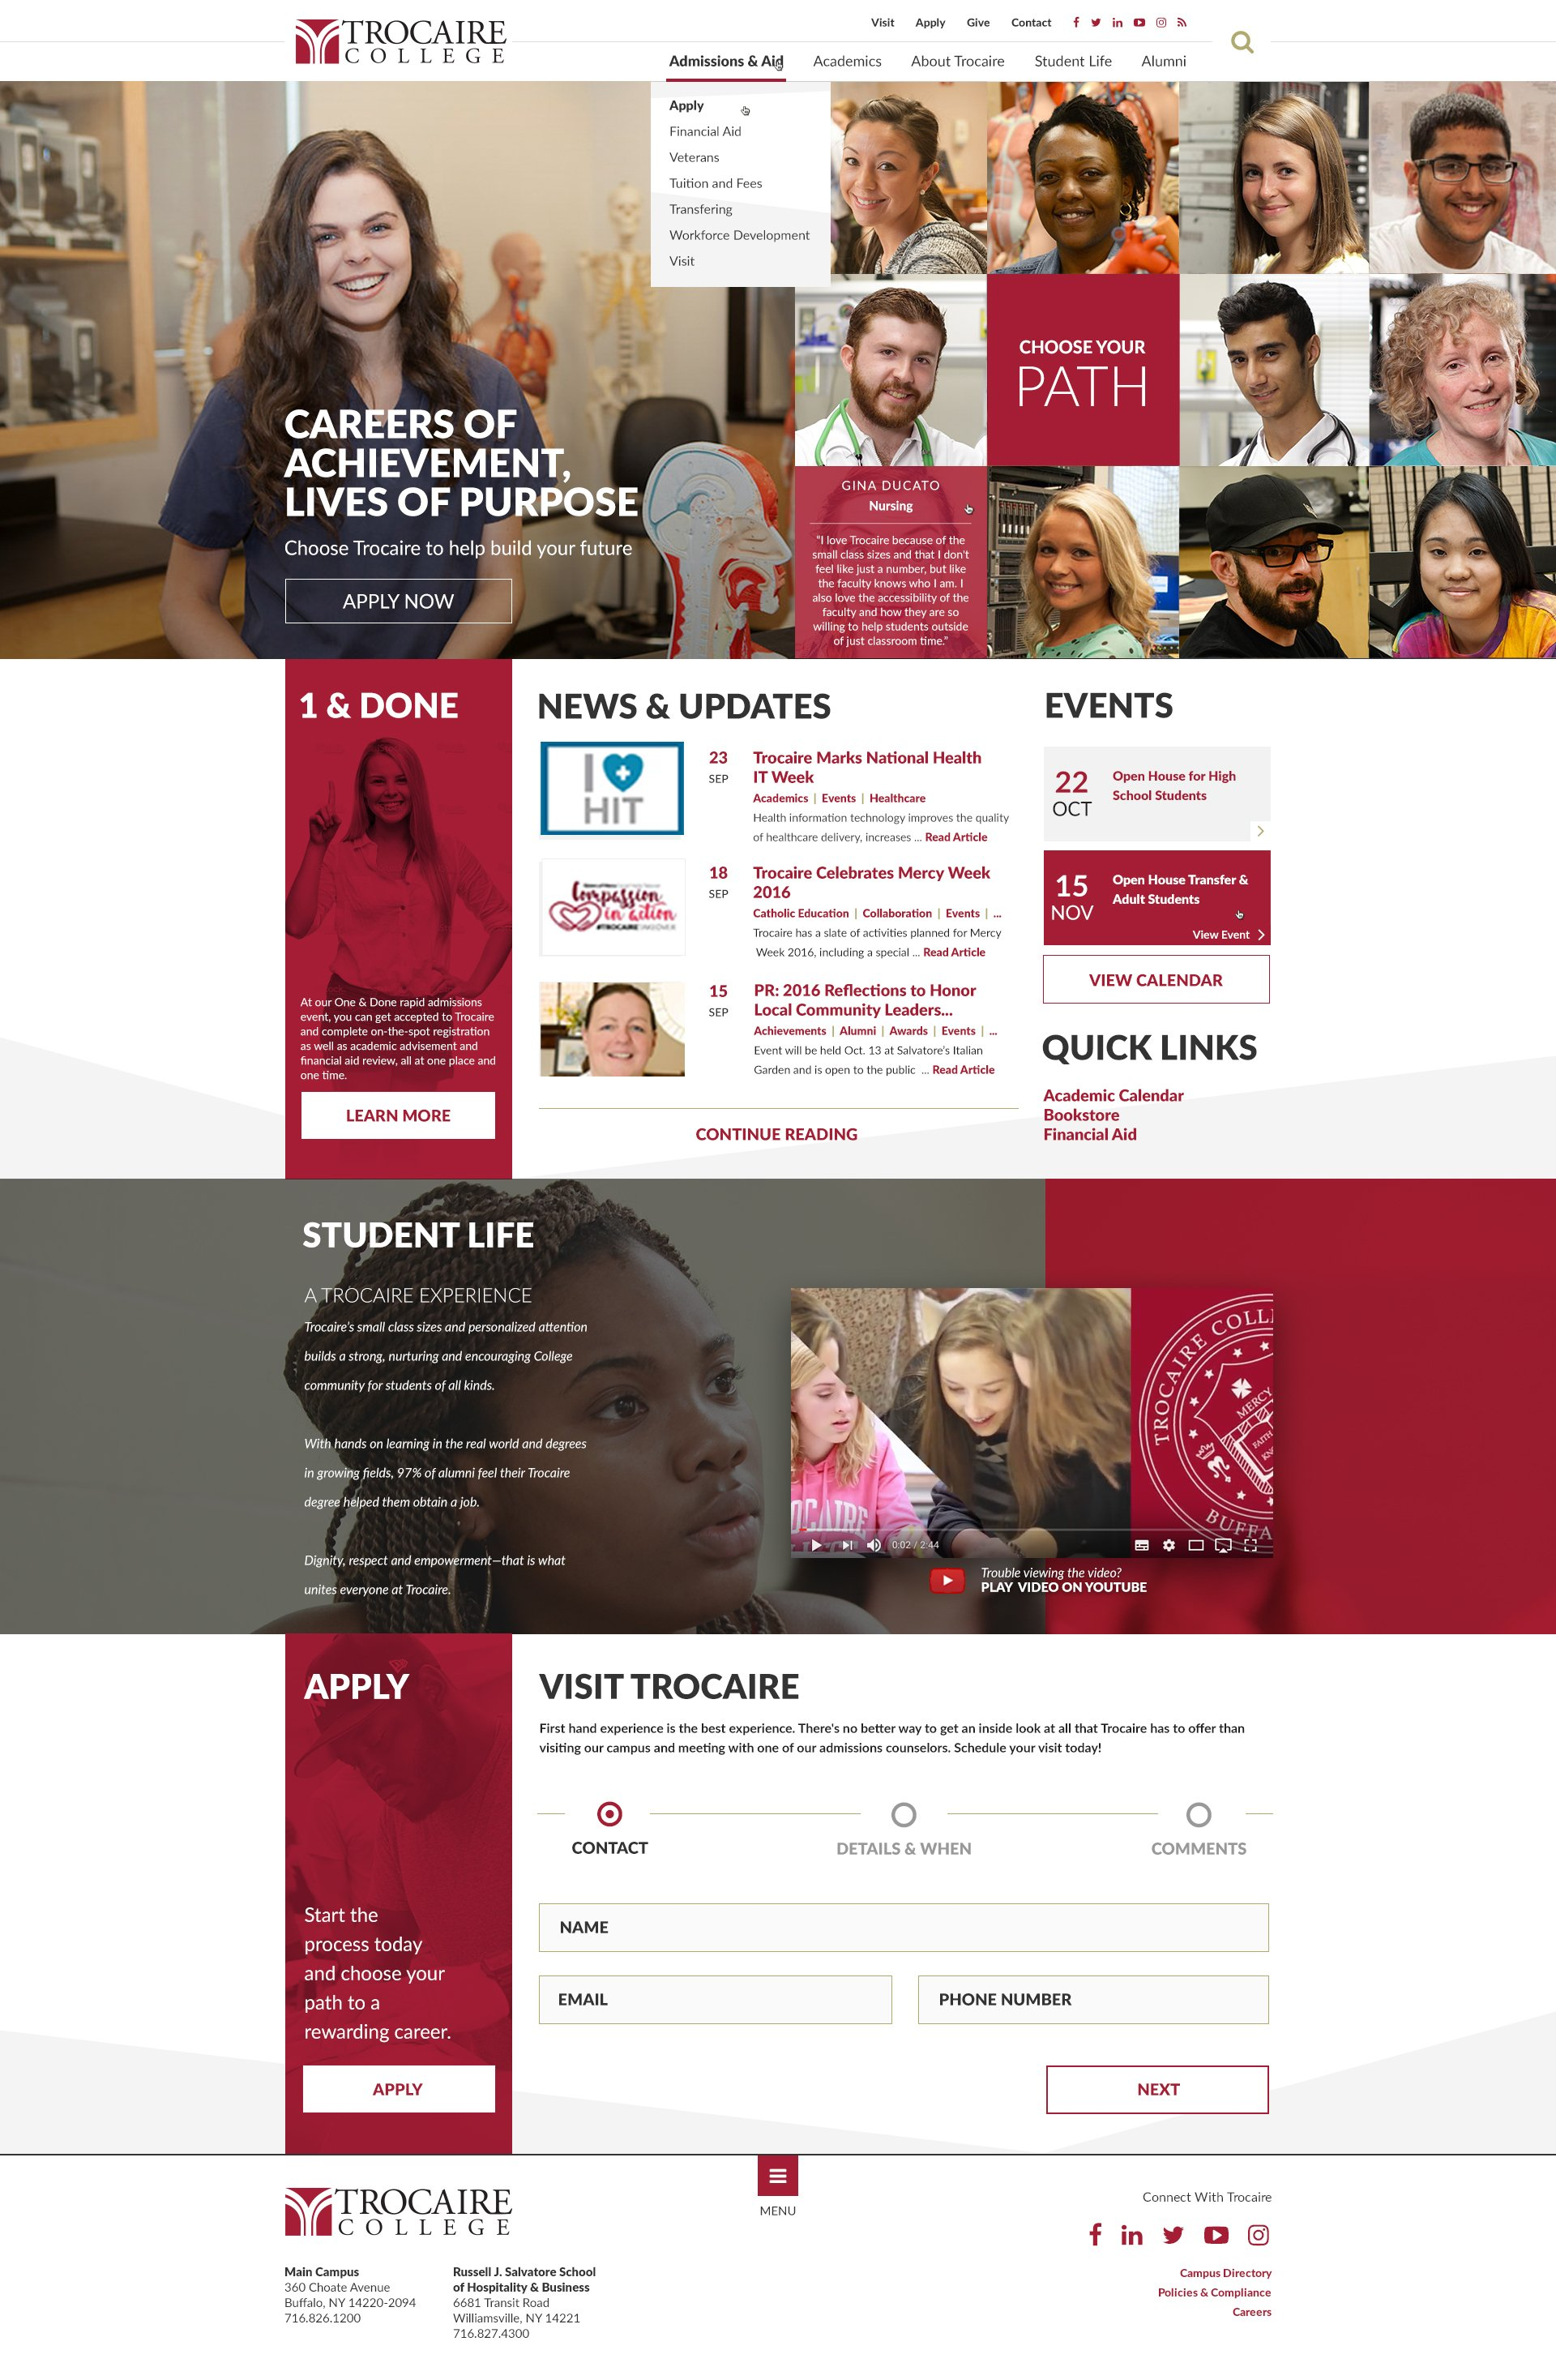 Trocaire College Homepage